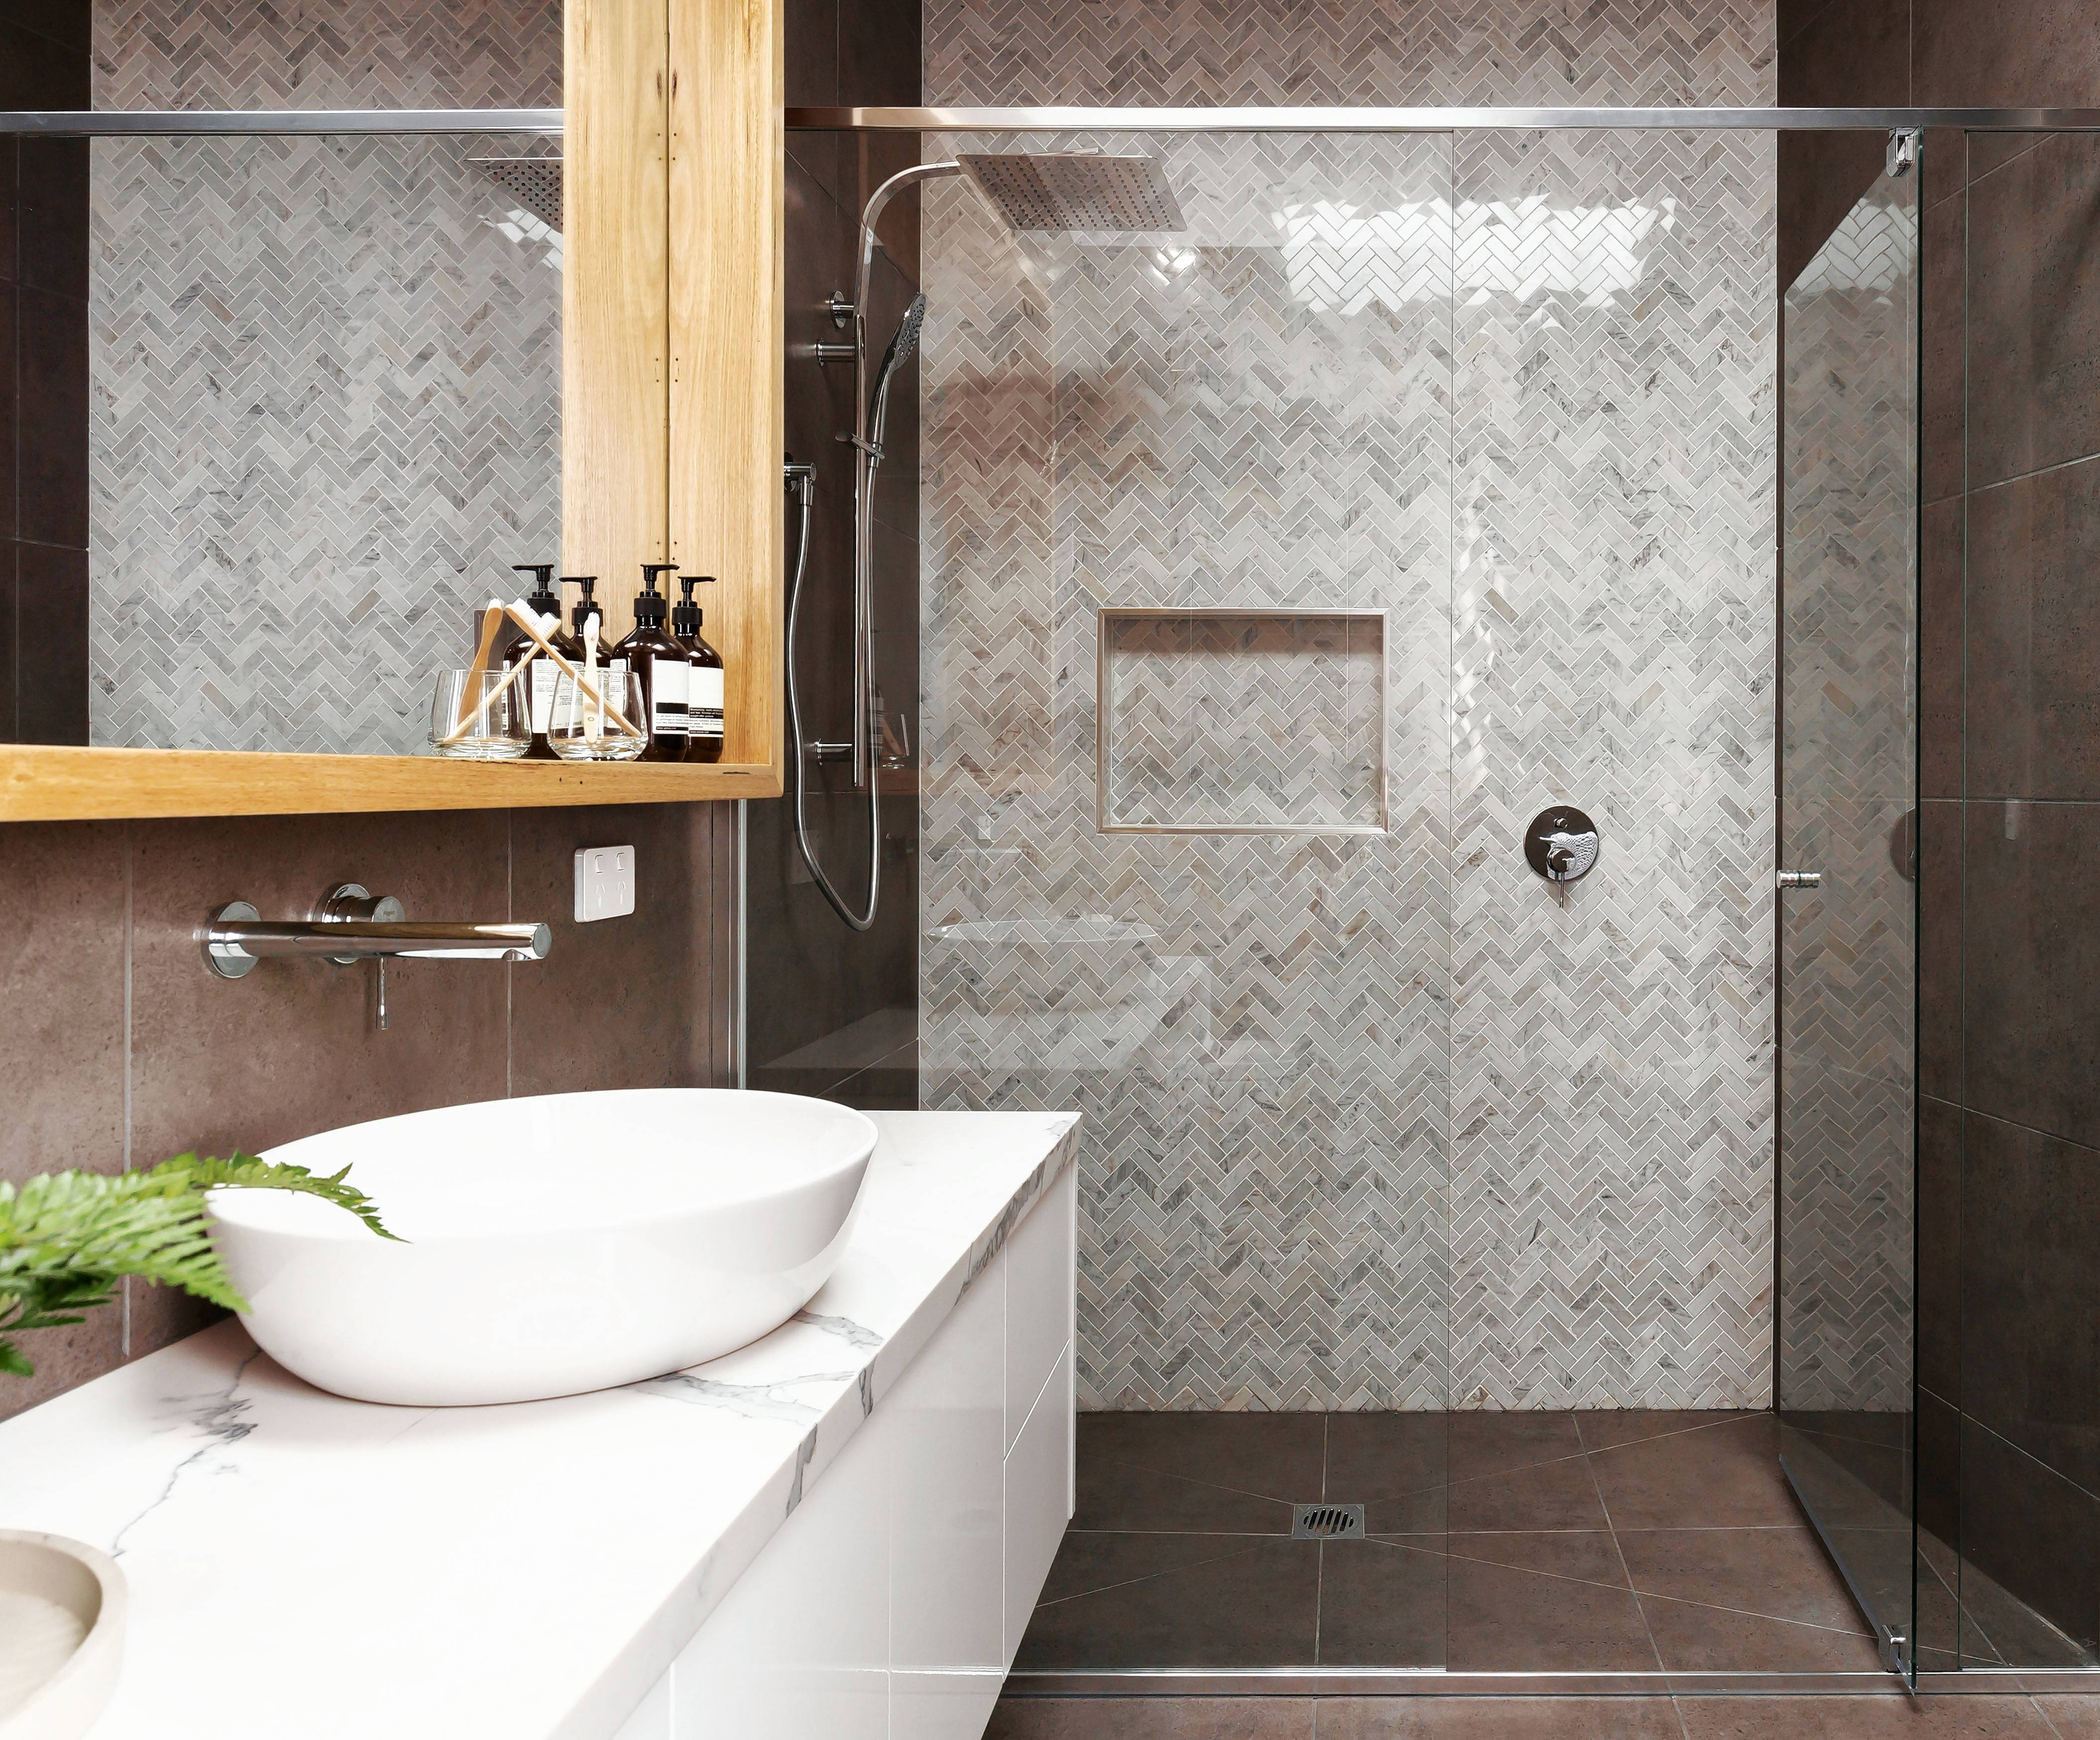 This shower, using marble tile in a mosaic herringbone pattern, makes for a contemporary bathroom.